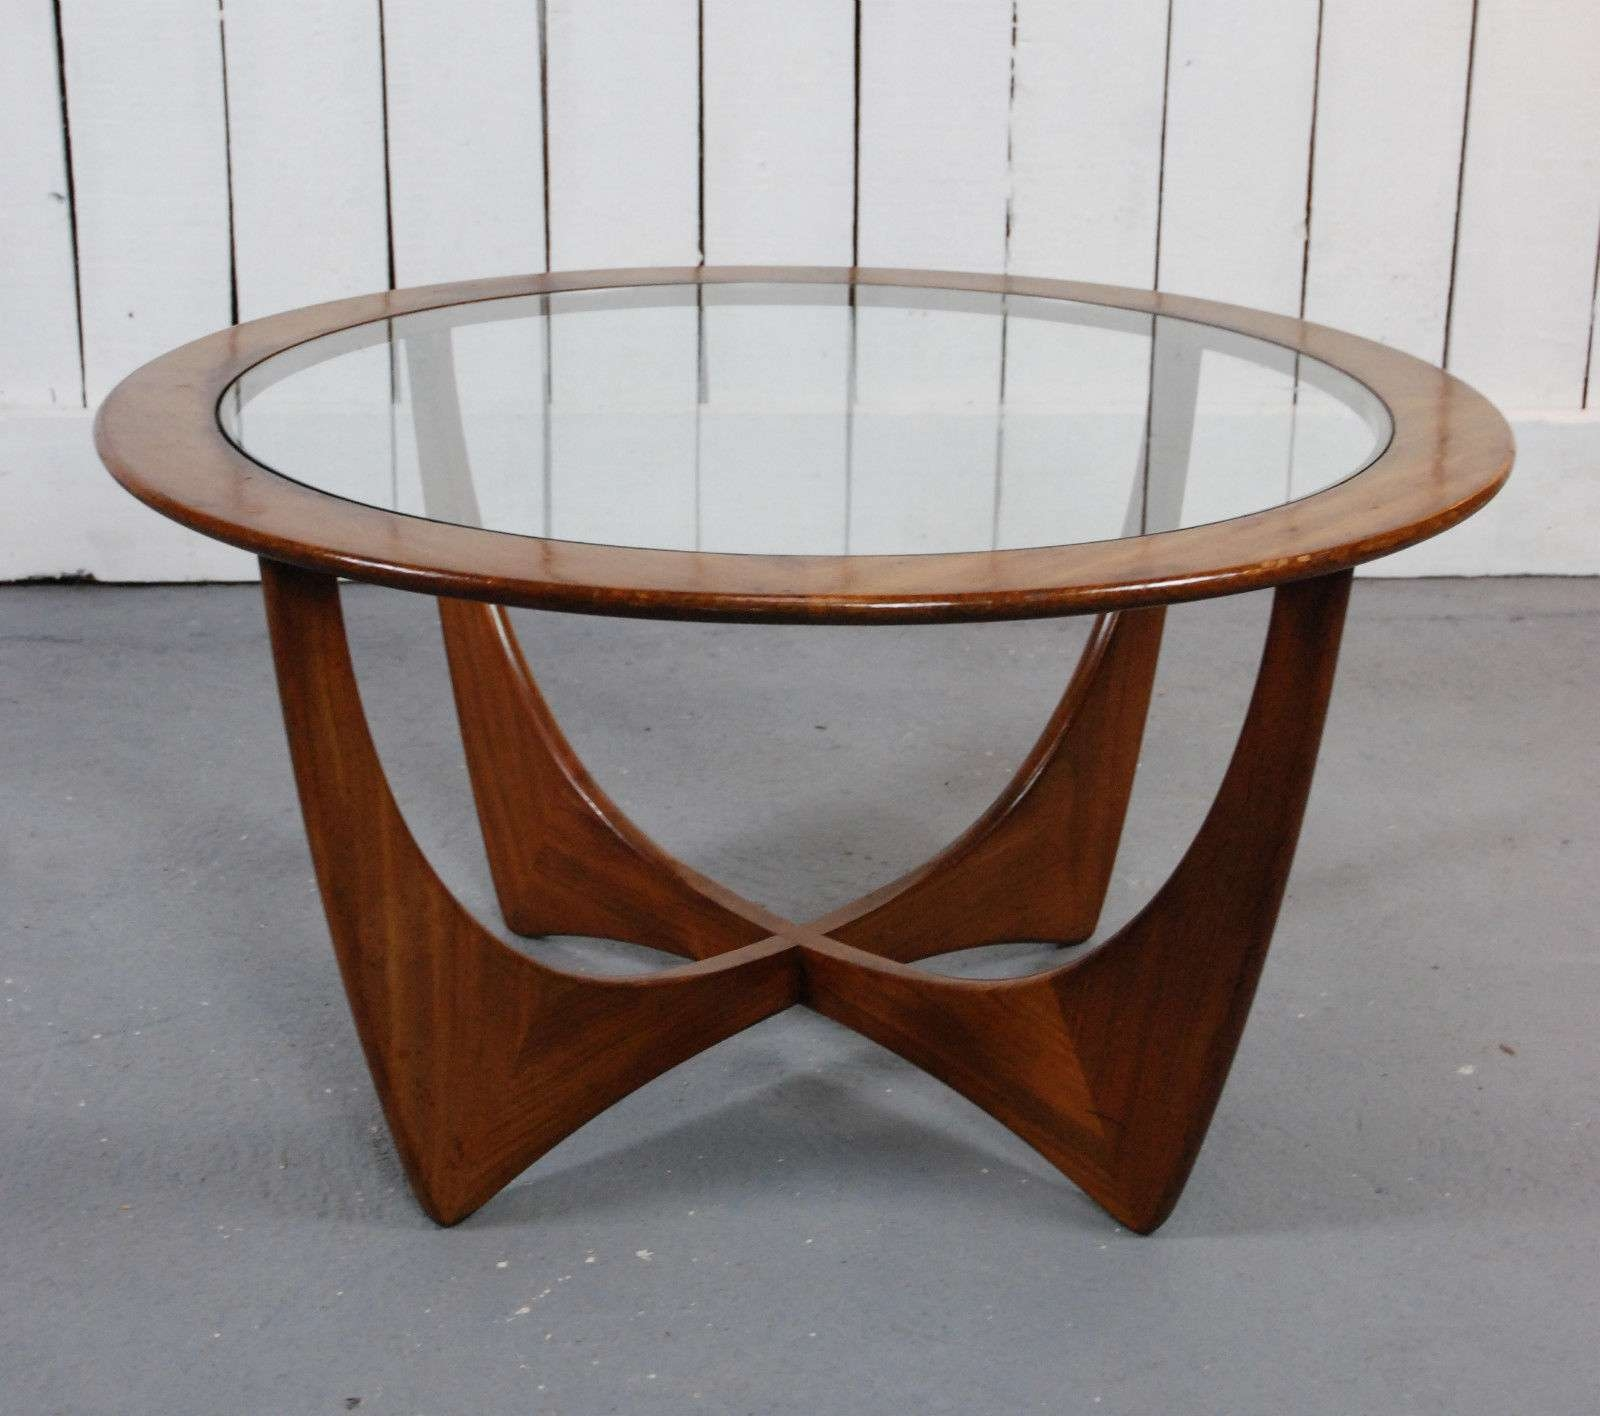 Modern Teak Round Coffee Table — New Home Design : Making Teak For Famous Glass Circular Coffee Tables (View 13 of 20)